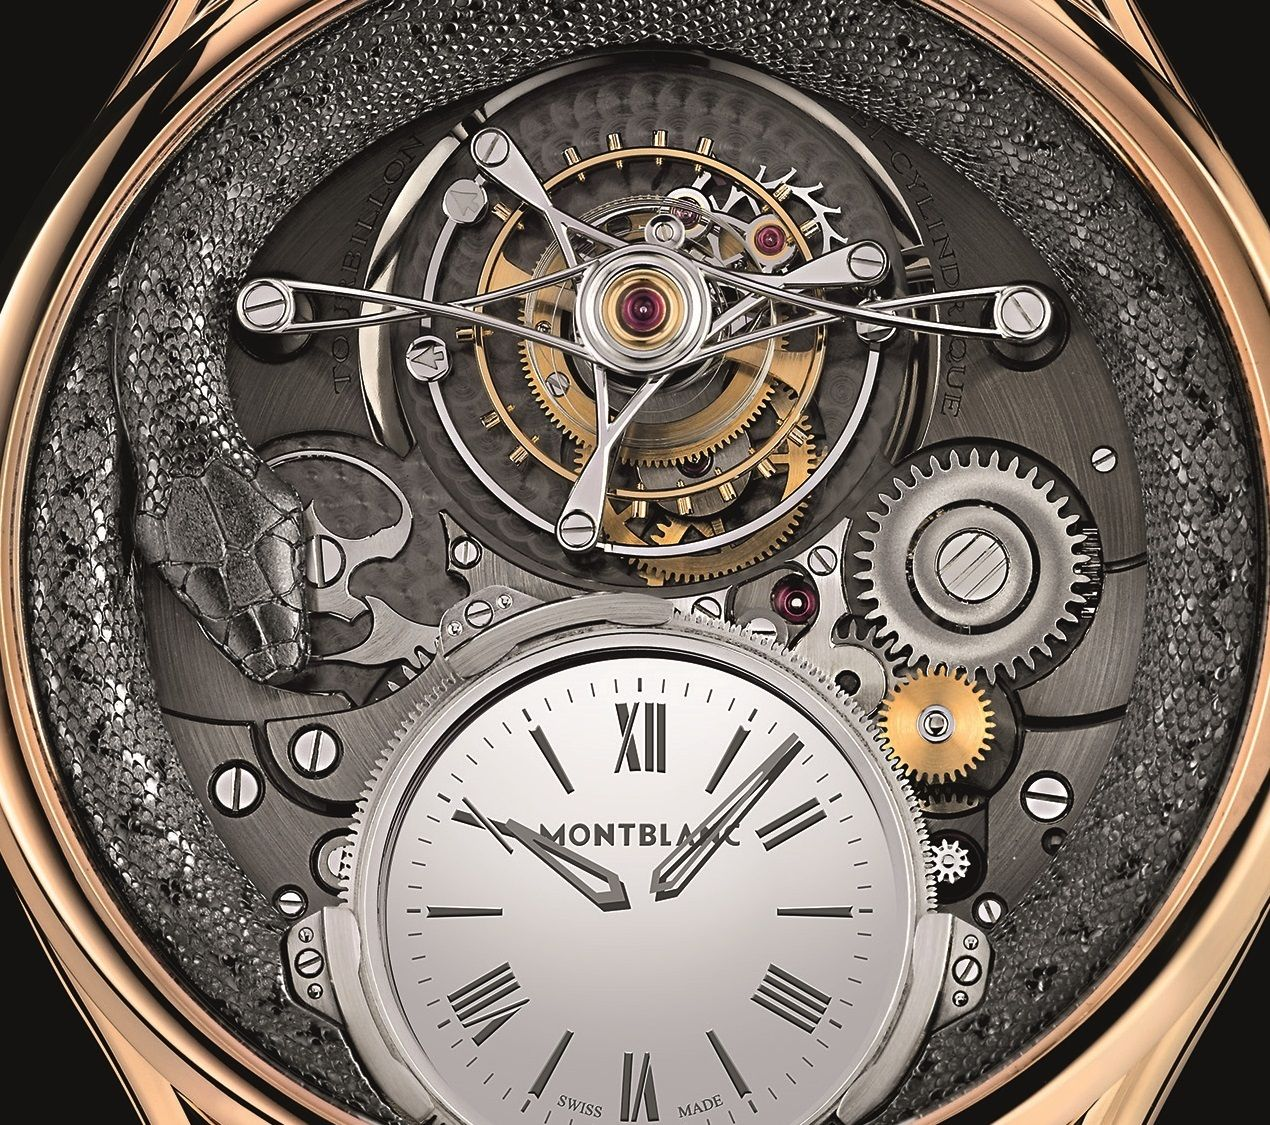 O Montblanc Villeret Tourbillon Bi-Cylindrique 110 Years Anniversary Limited Edition